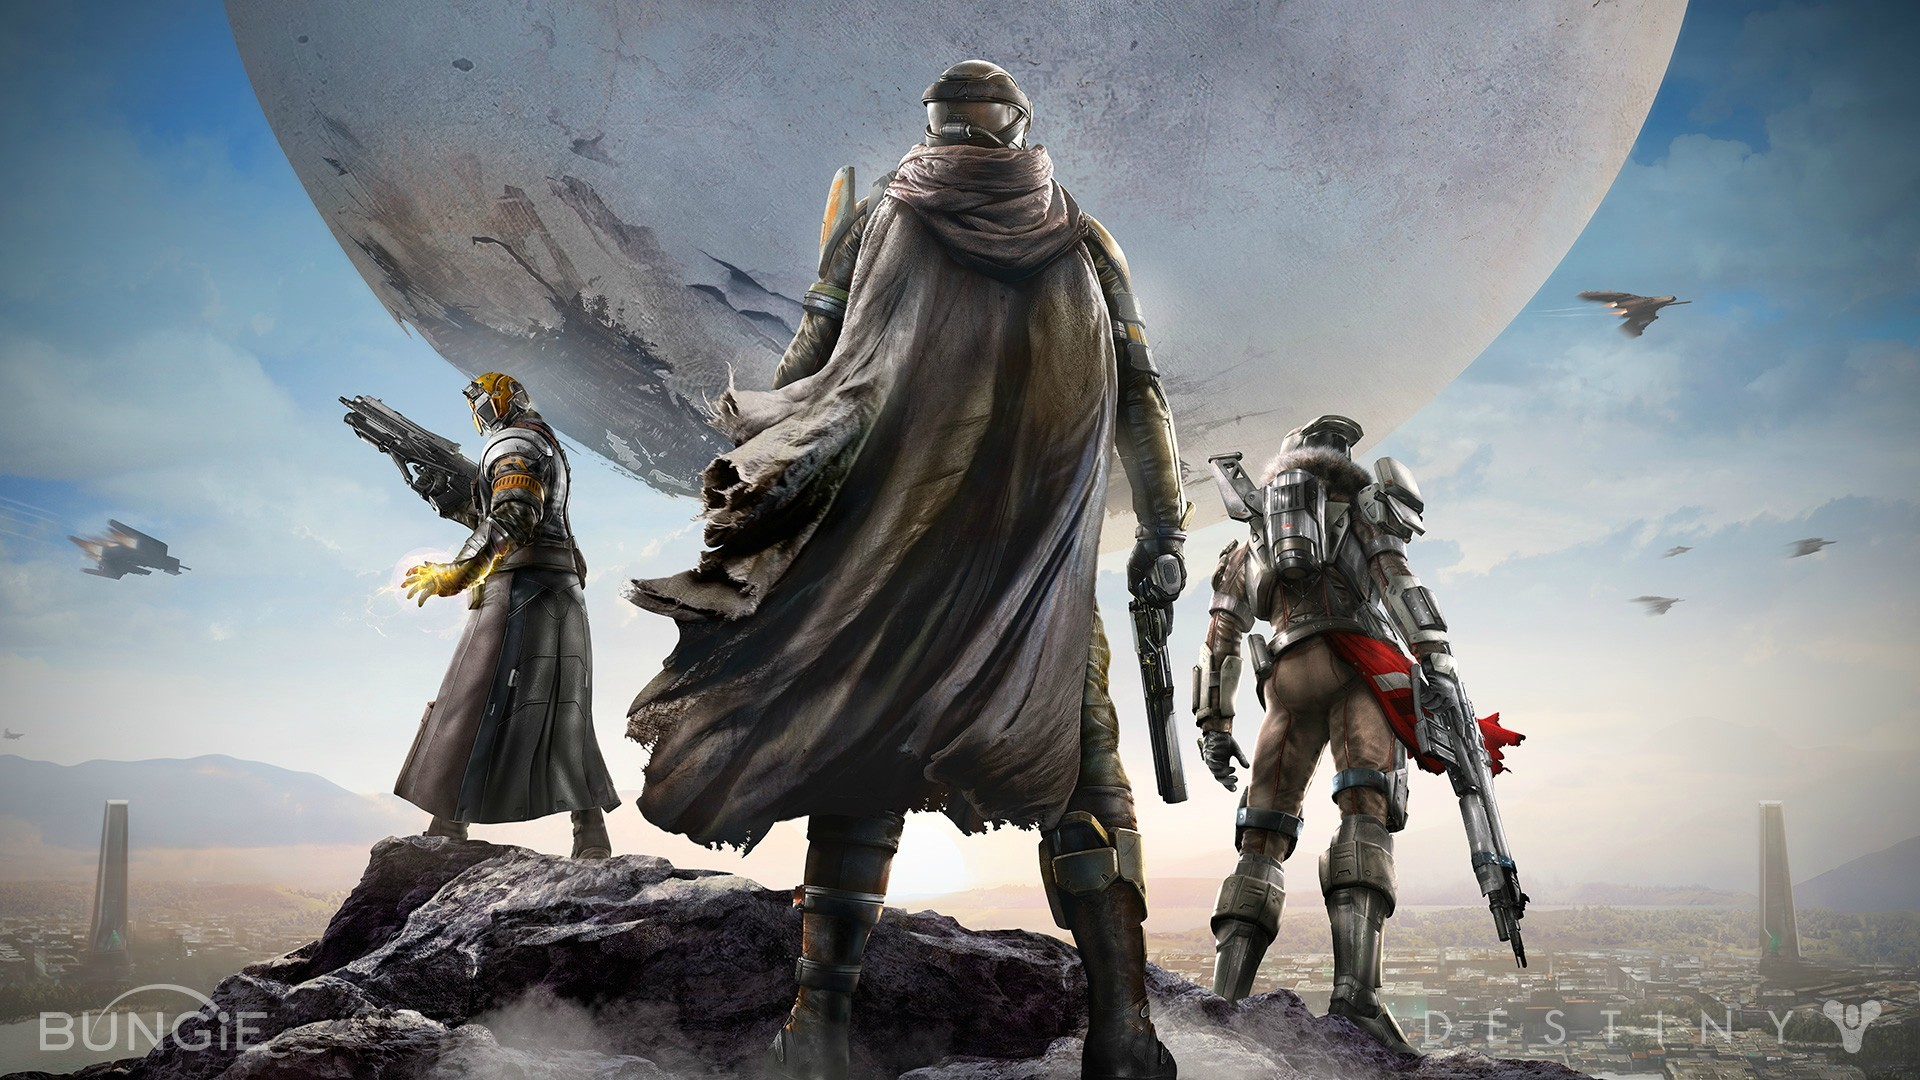 games movies music anime destiny 4 new 1080p wallpapers